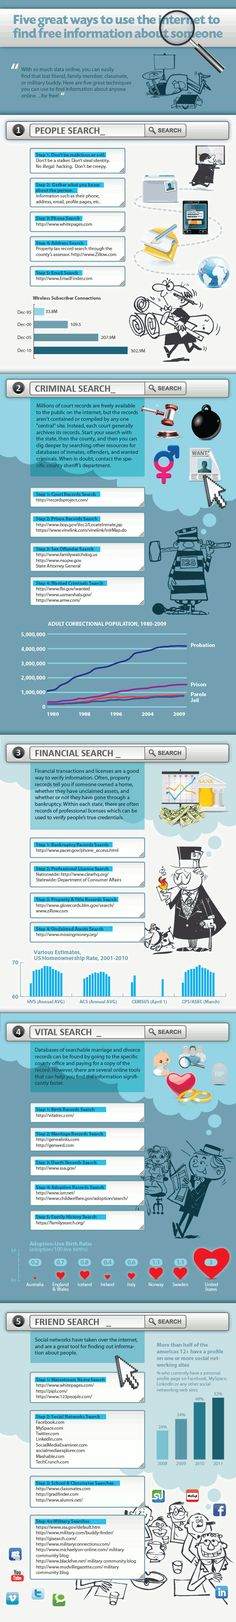 How To Find Free Information About Anyone Online? 5 Search Strategies & 40 Plus Resources #infographic